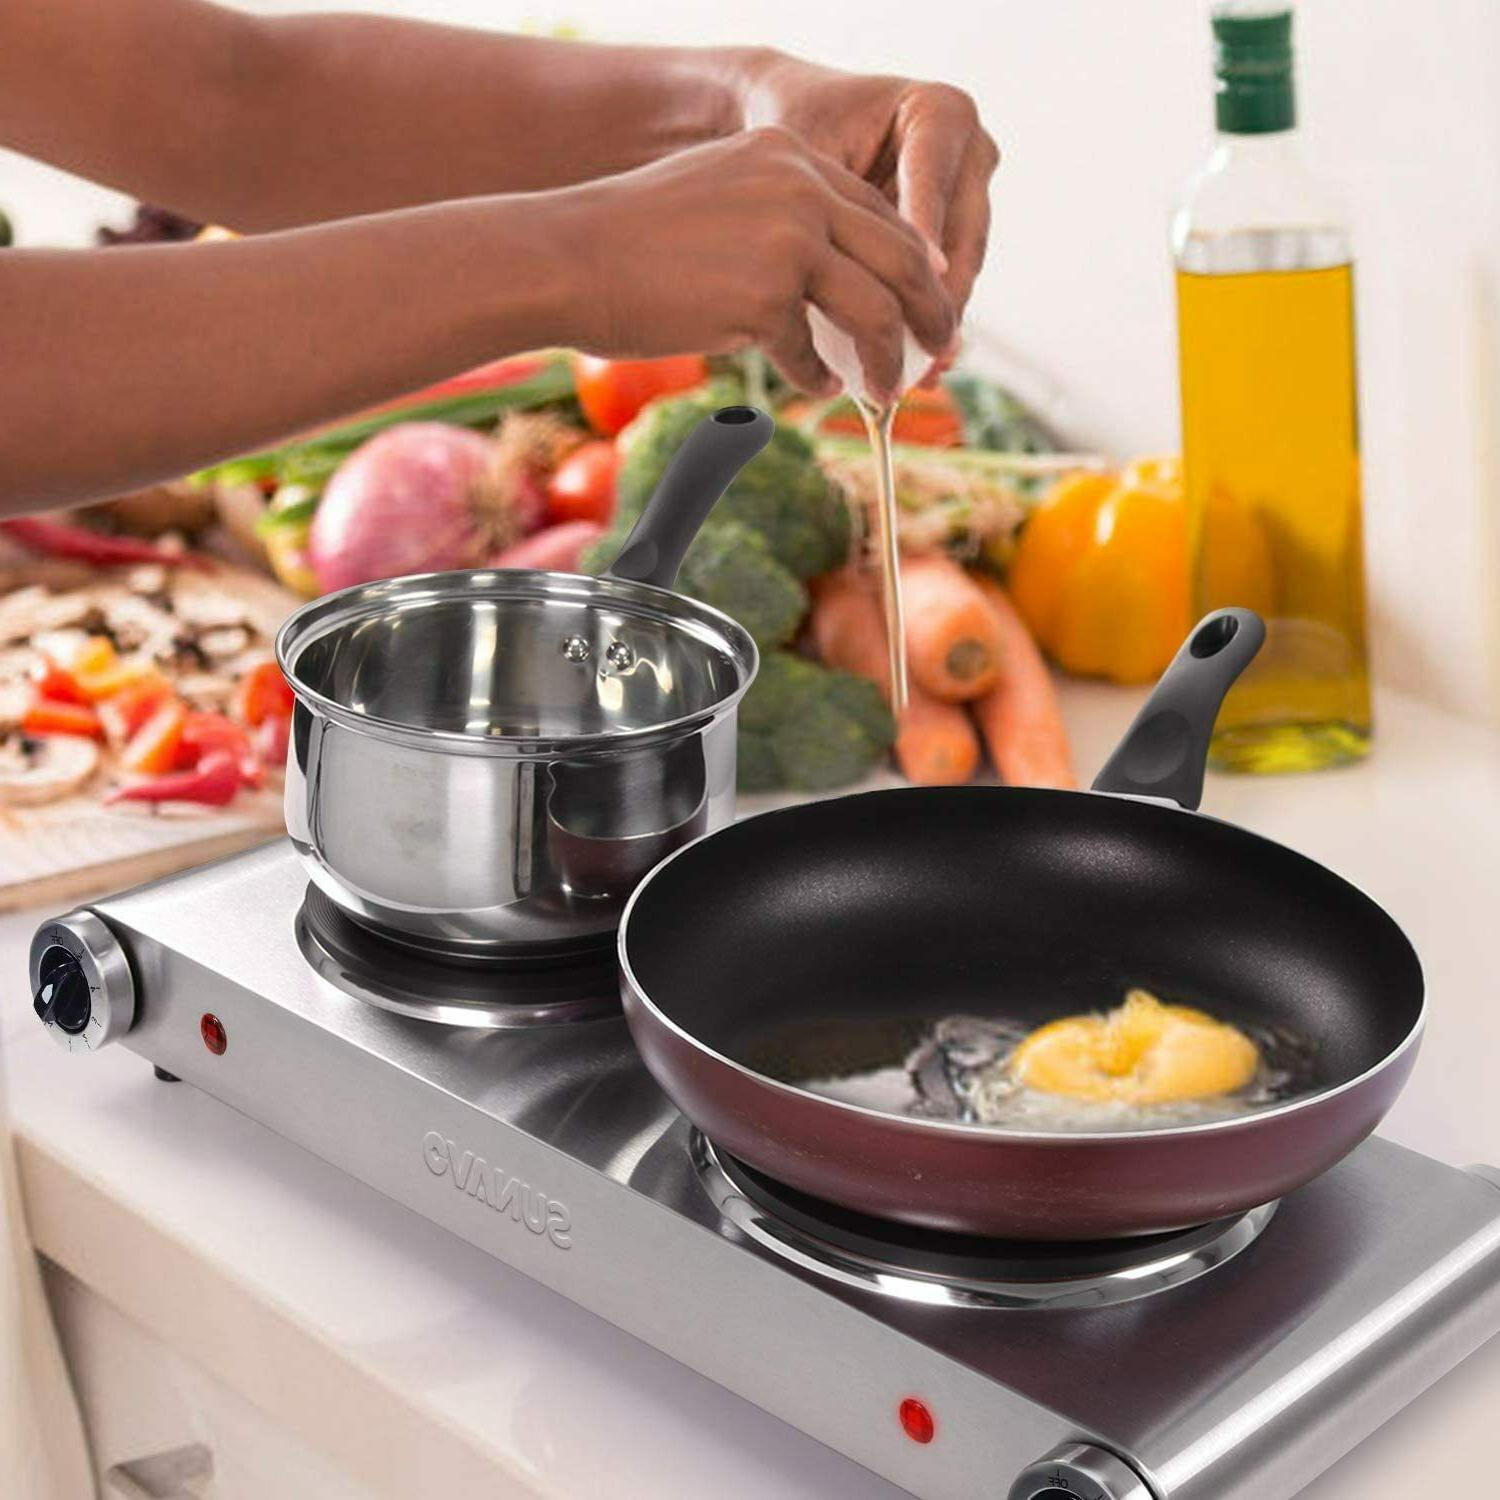 Hot Plates Cooking Portable Electric Burner 1800W Level